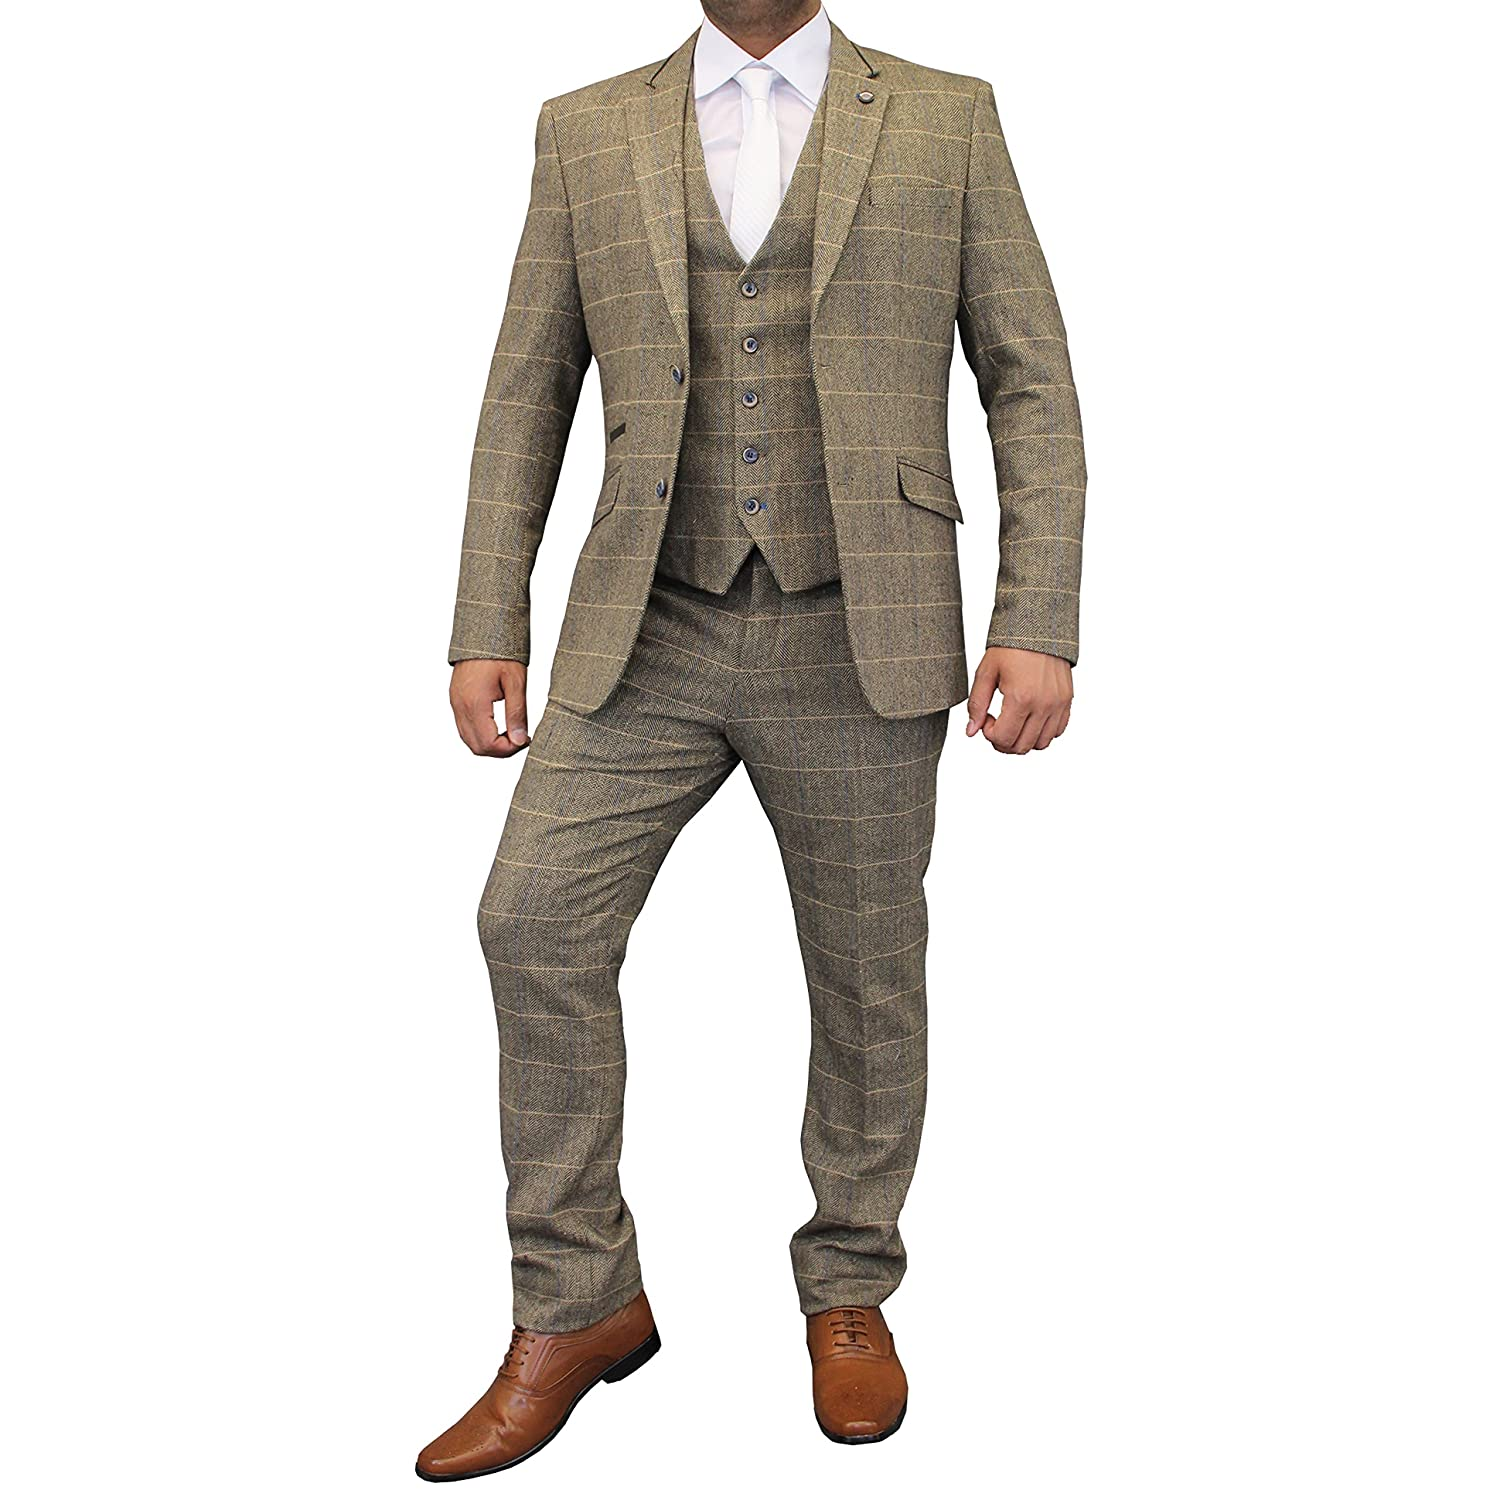 Vintage Style Children's Clothing: Girls, Boys, Baby, Toddler Creon Previs Boys Wool Mix Suits 3 Piece Tweed Cavani Blazer Waistcoat Trouser £59.98 AT vintagedancer.com